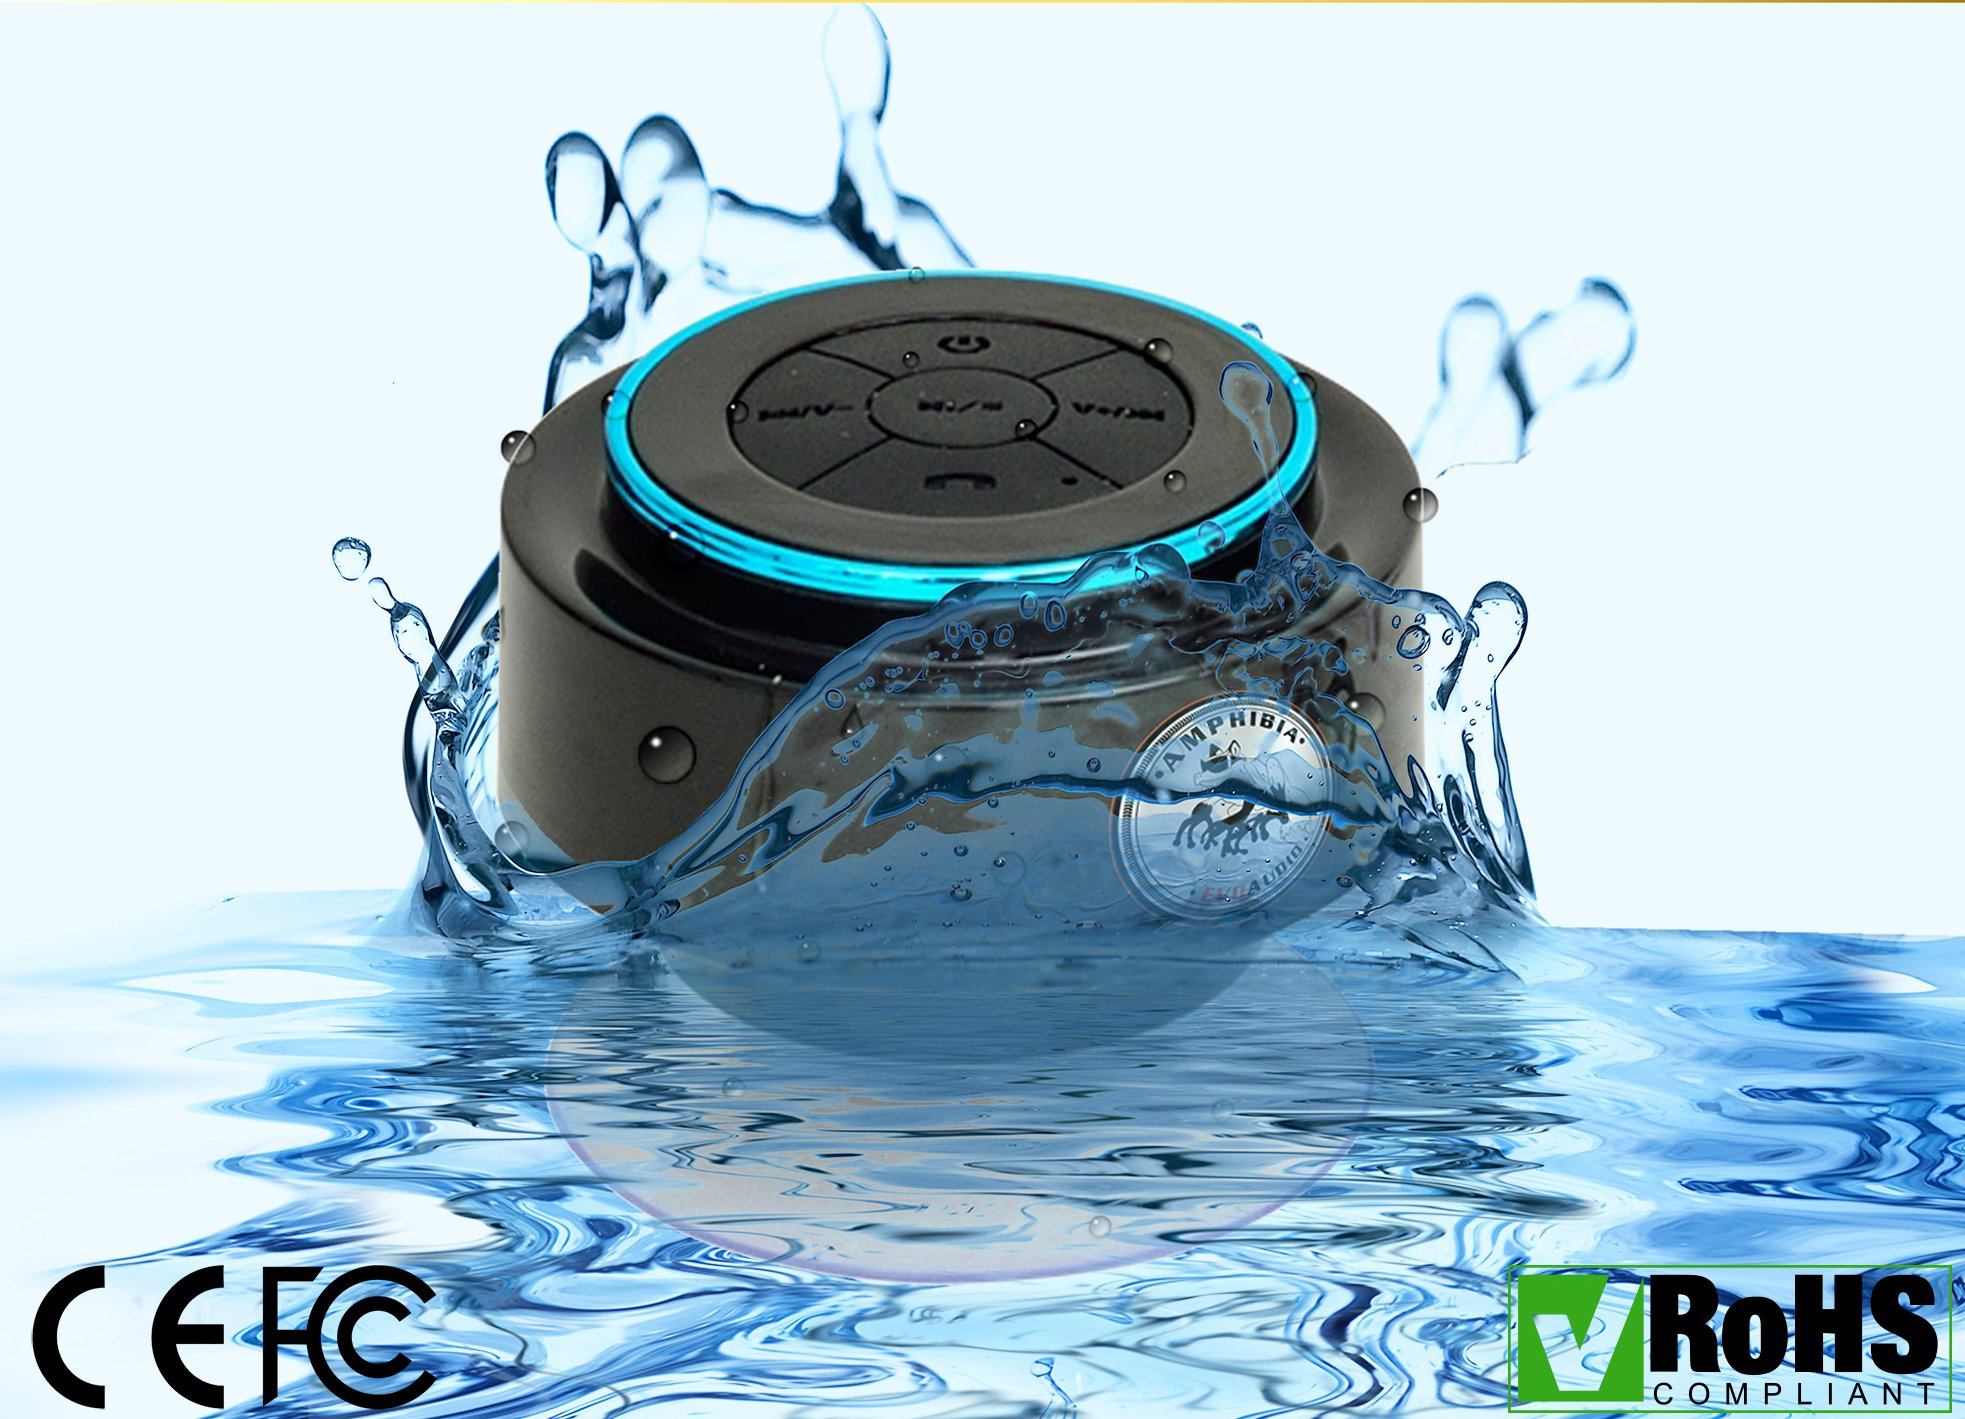 EVOs Bluetooth Shower Speaker + Handsfree AnswerPhone + FM RADIO - Wireless Portable & Pairs Easily To All Your Bluetooth Devices - iPhones Androids Tablets Computer - FULLY WATERPROOF Great Gift!